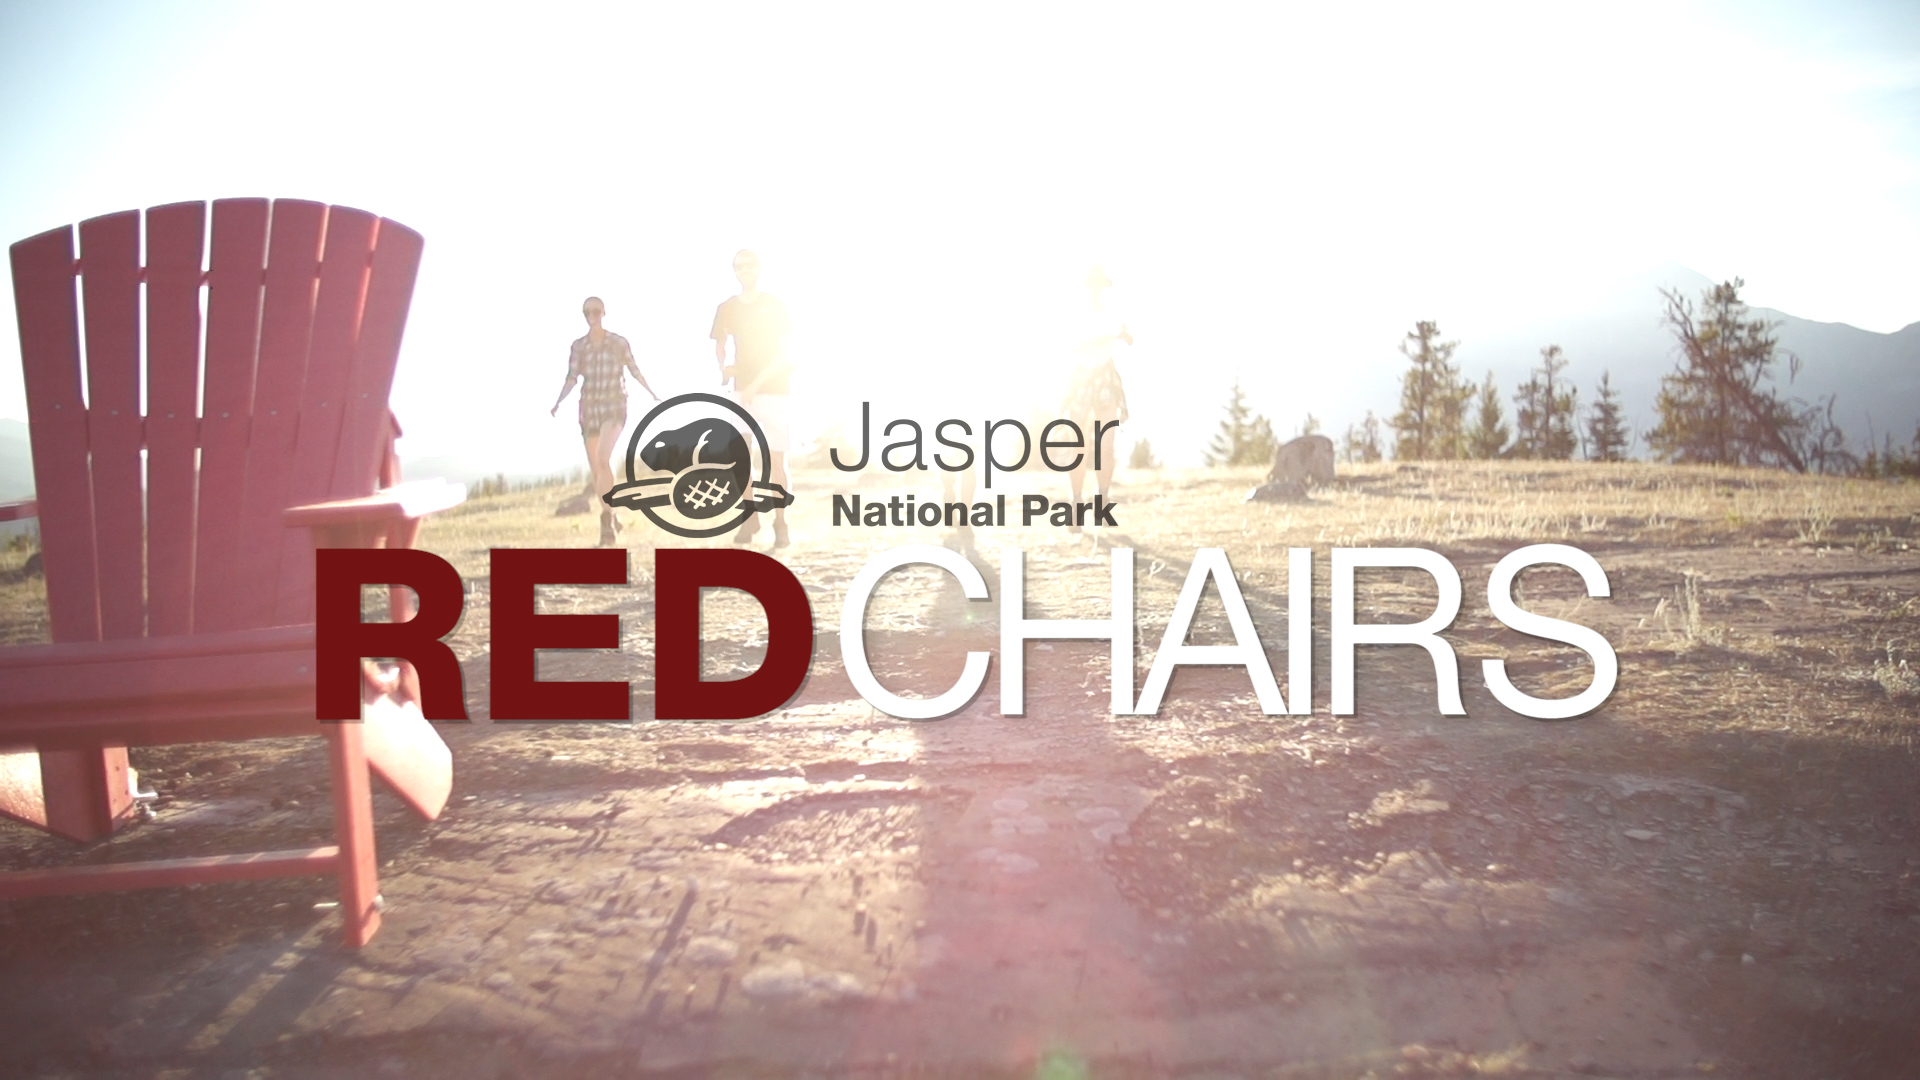 Red Chairs - Jasper National Park - Seek them out. Find them all. Share the chairs with everyone! Jasper's new Red Chairs are out in 6 striking locations throughout the park with more to come in the years ahead. Found in areas ranging from alpine meadows to waterside havens, each offers its own special experience and a chance to develop your own sense of place within Jasper's iconic mountain scenery. Check them out, seek them all out and share your images with us! For information to help you find your way, begin by exploring the website: www.pc.gc.ca/jasperredchair